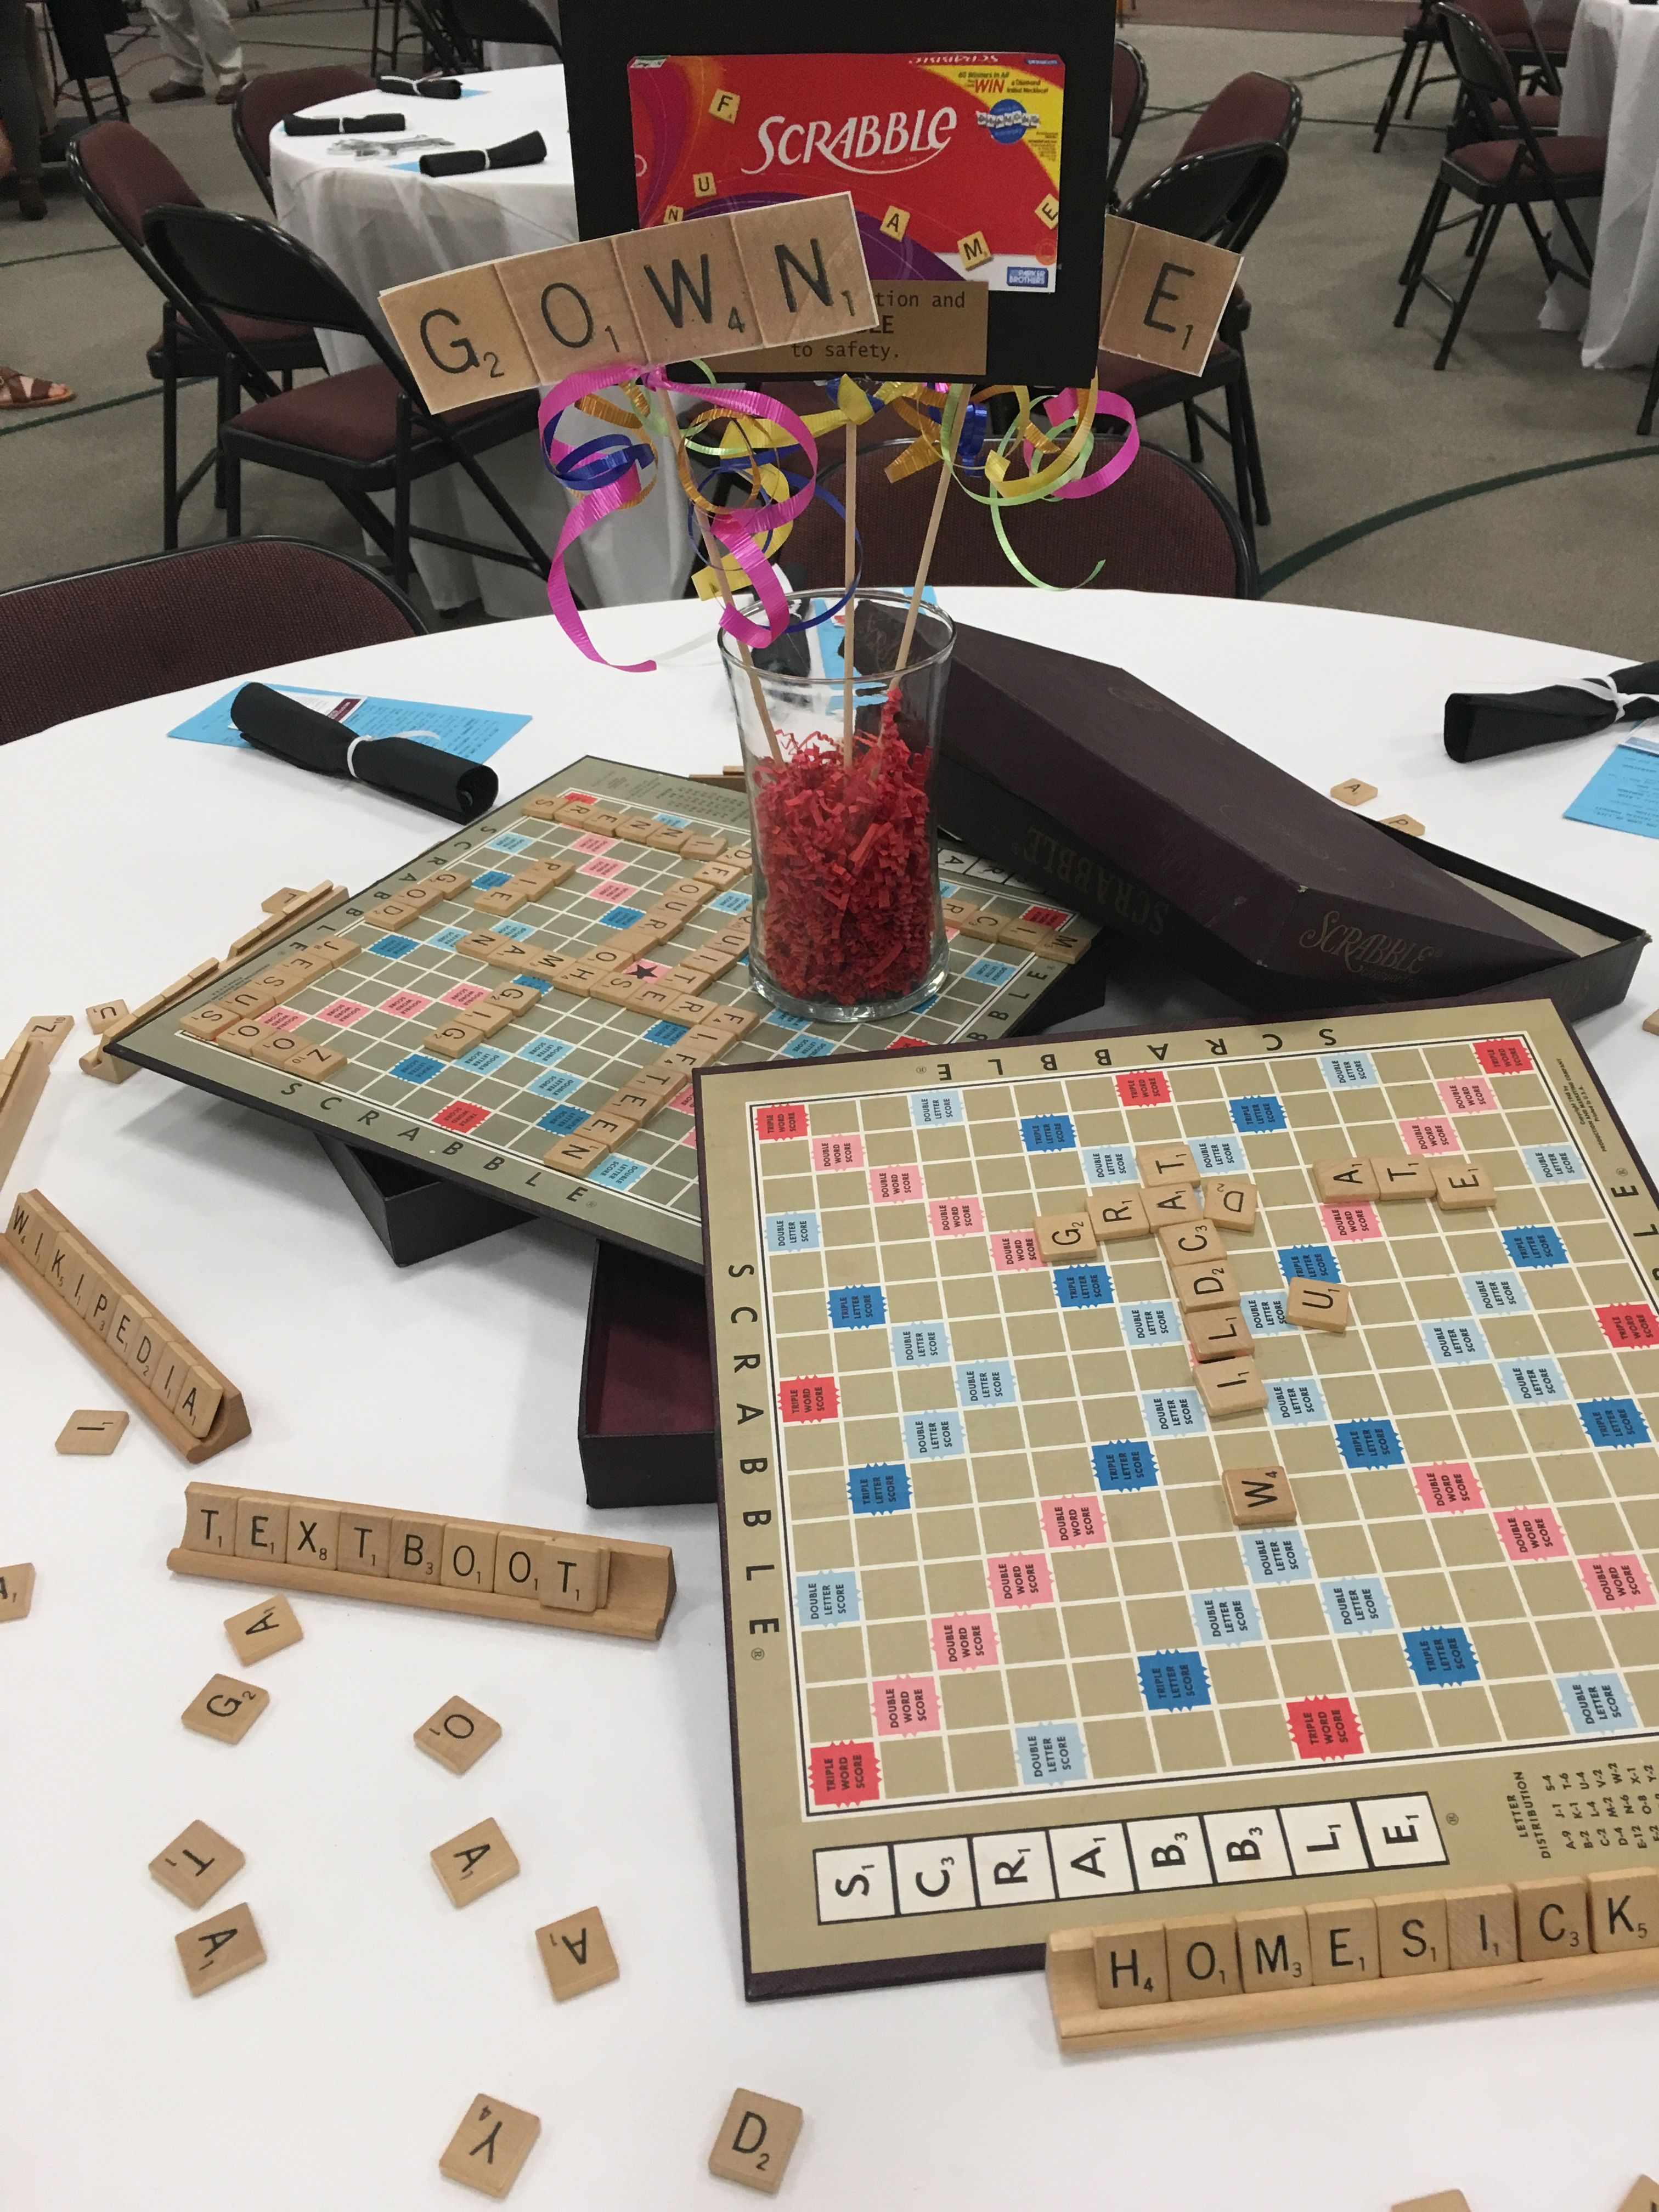 Boardgame Theme Graduation Party Scrabble Game Table Centerpiece Board Game Themes Game Night Decorations Graduation Table Centerpieces